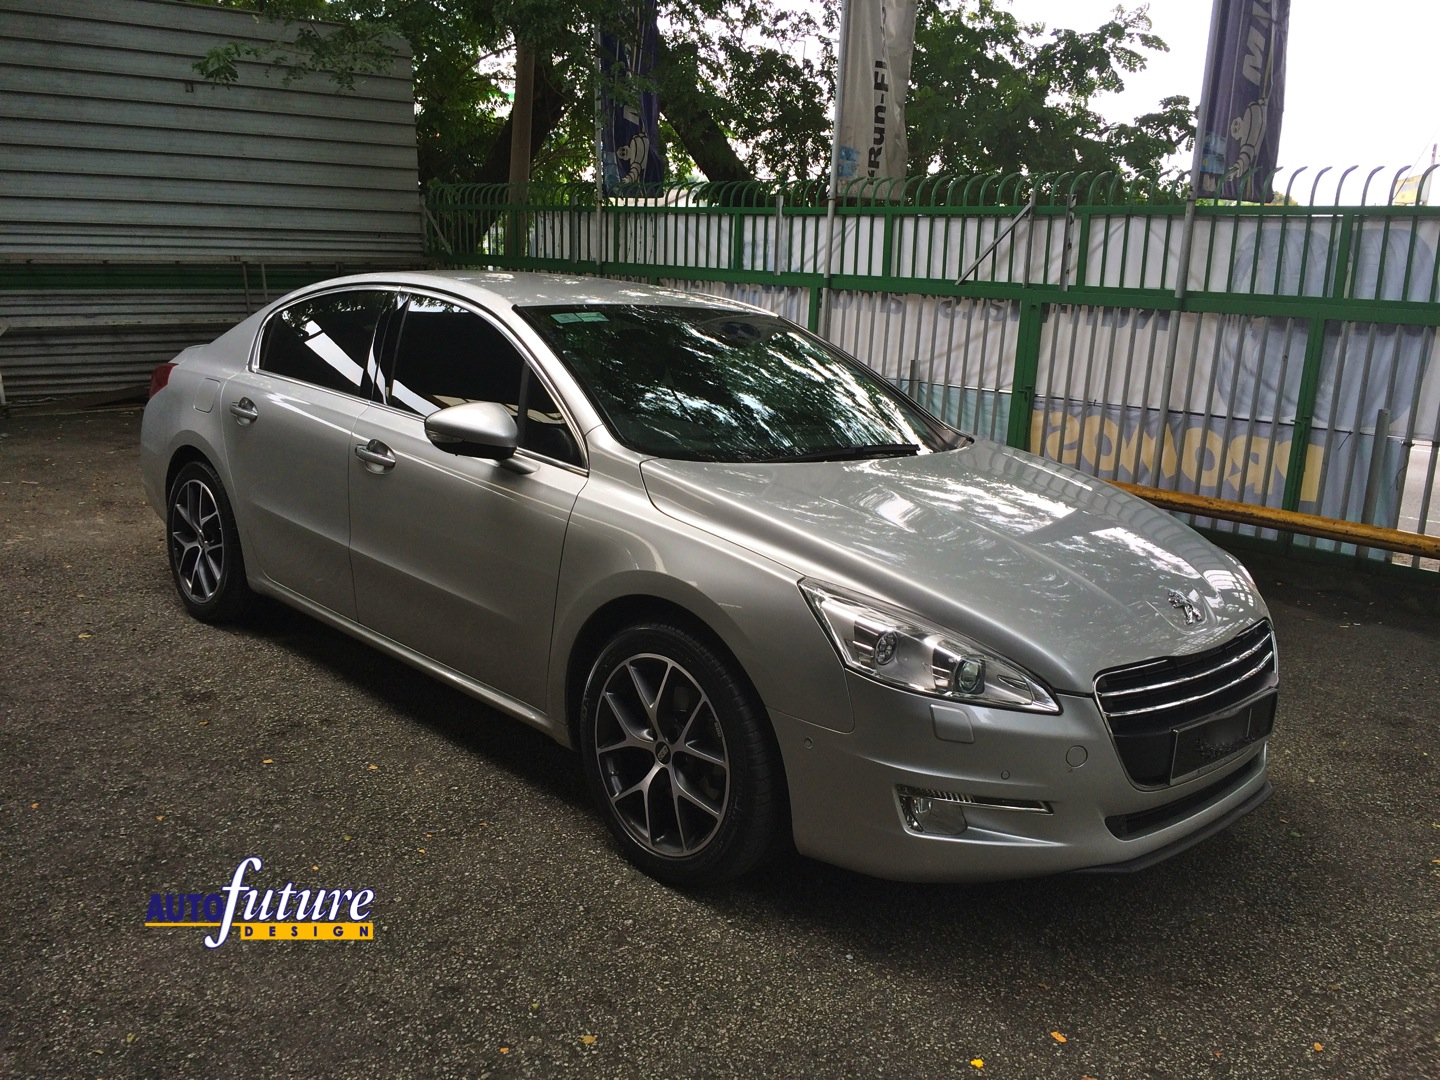 Peugeot 508 With Bbs Sr Wheels Autofuture Design Sdn Bhd